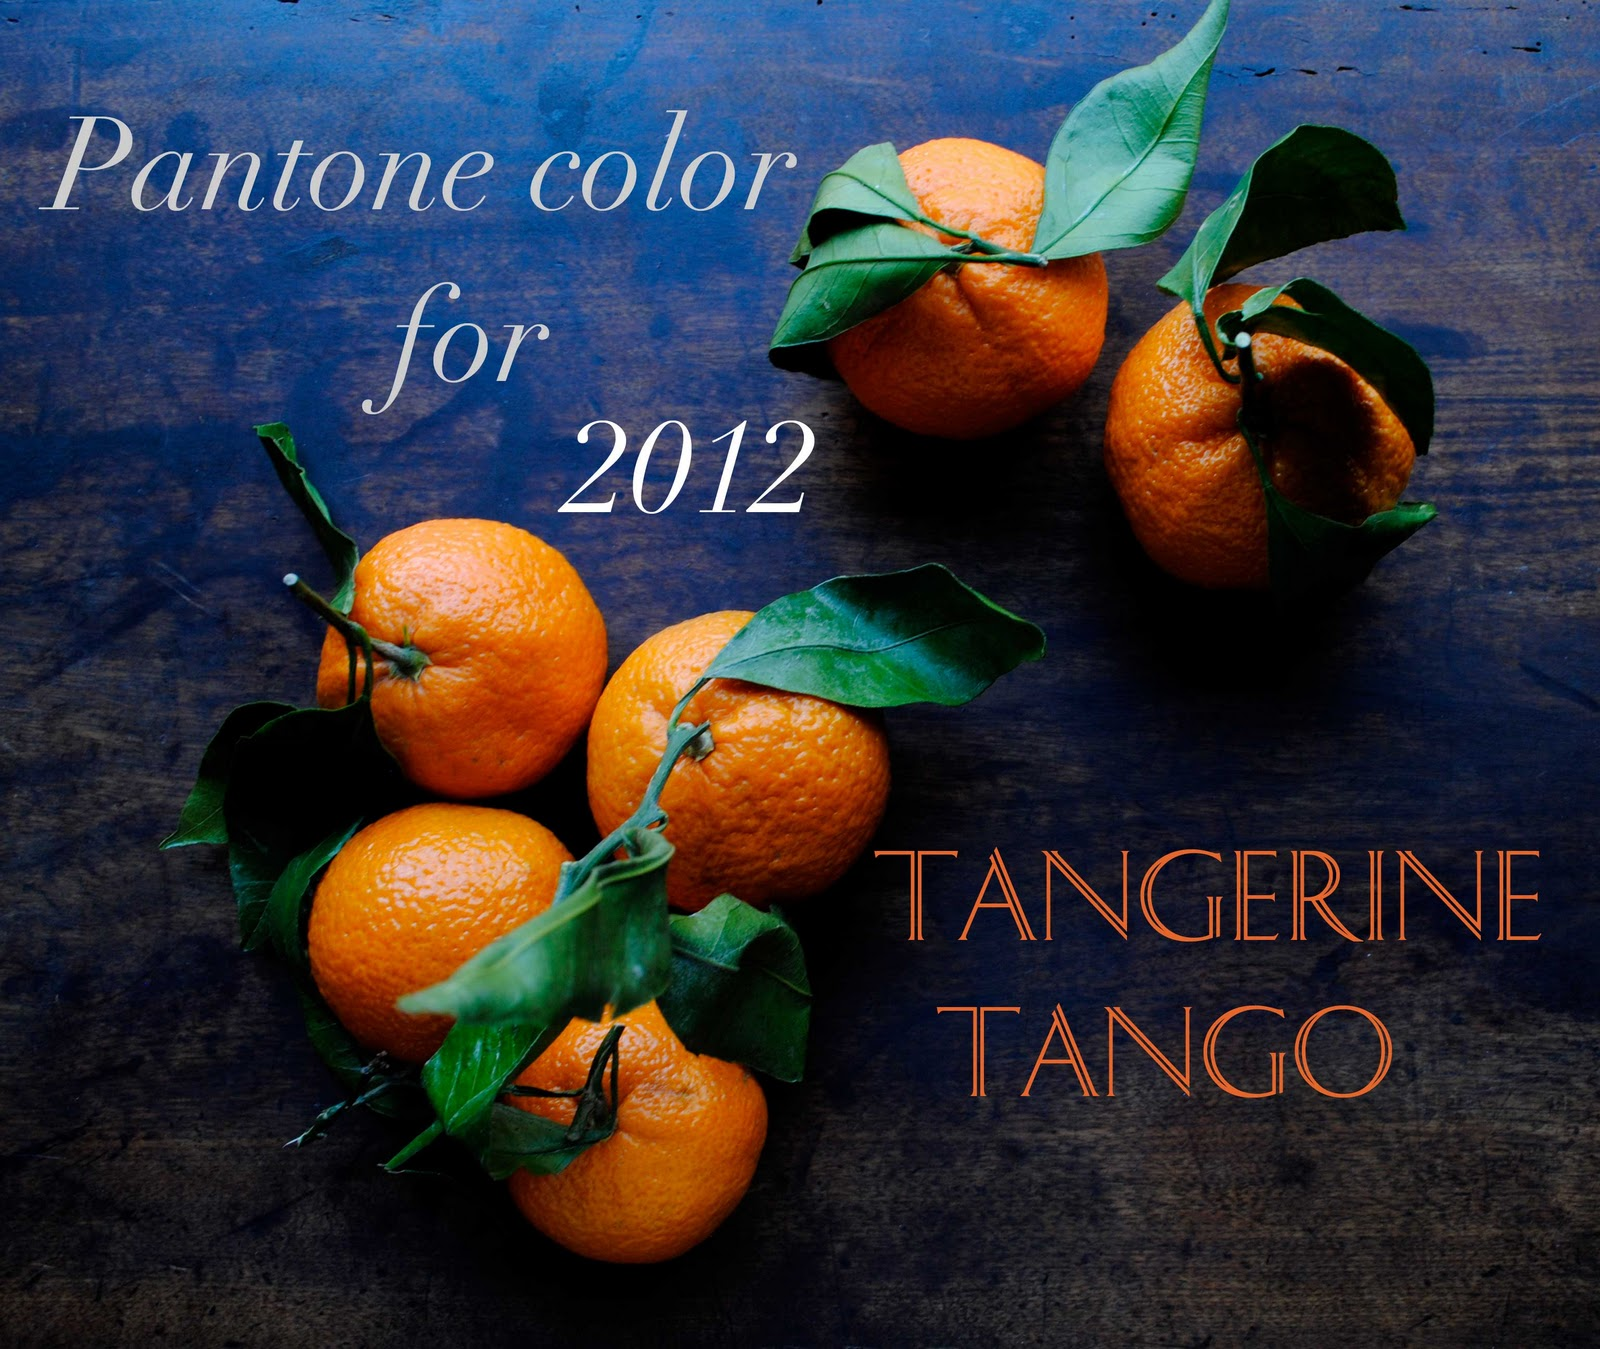 A House Mouse Pantone Color For 2012